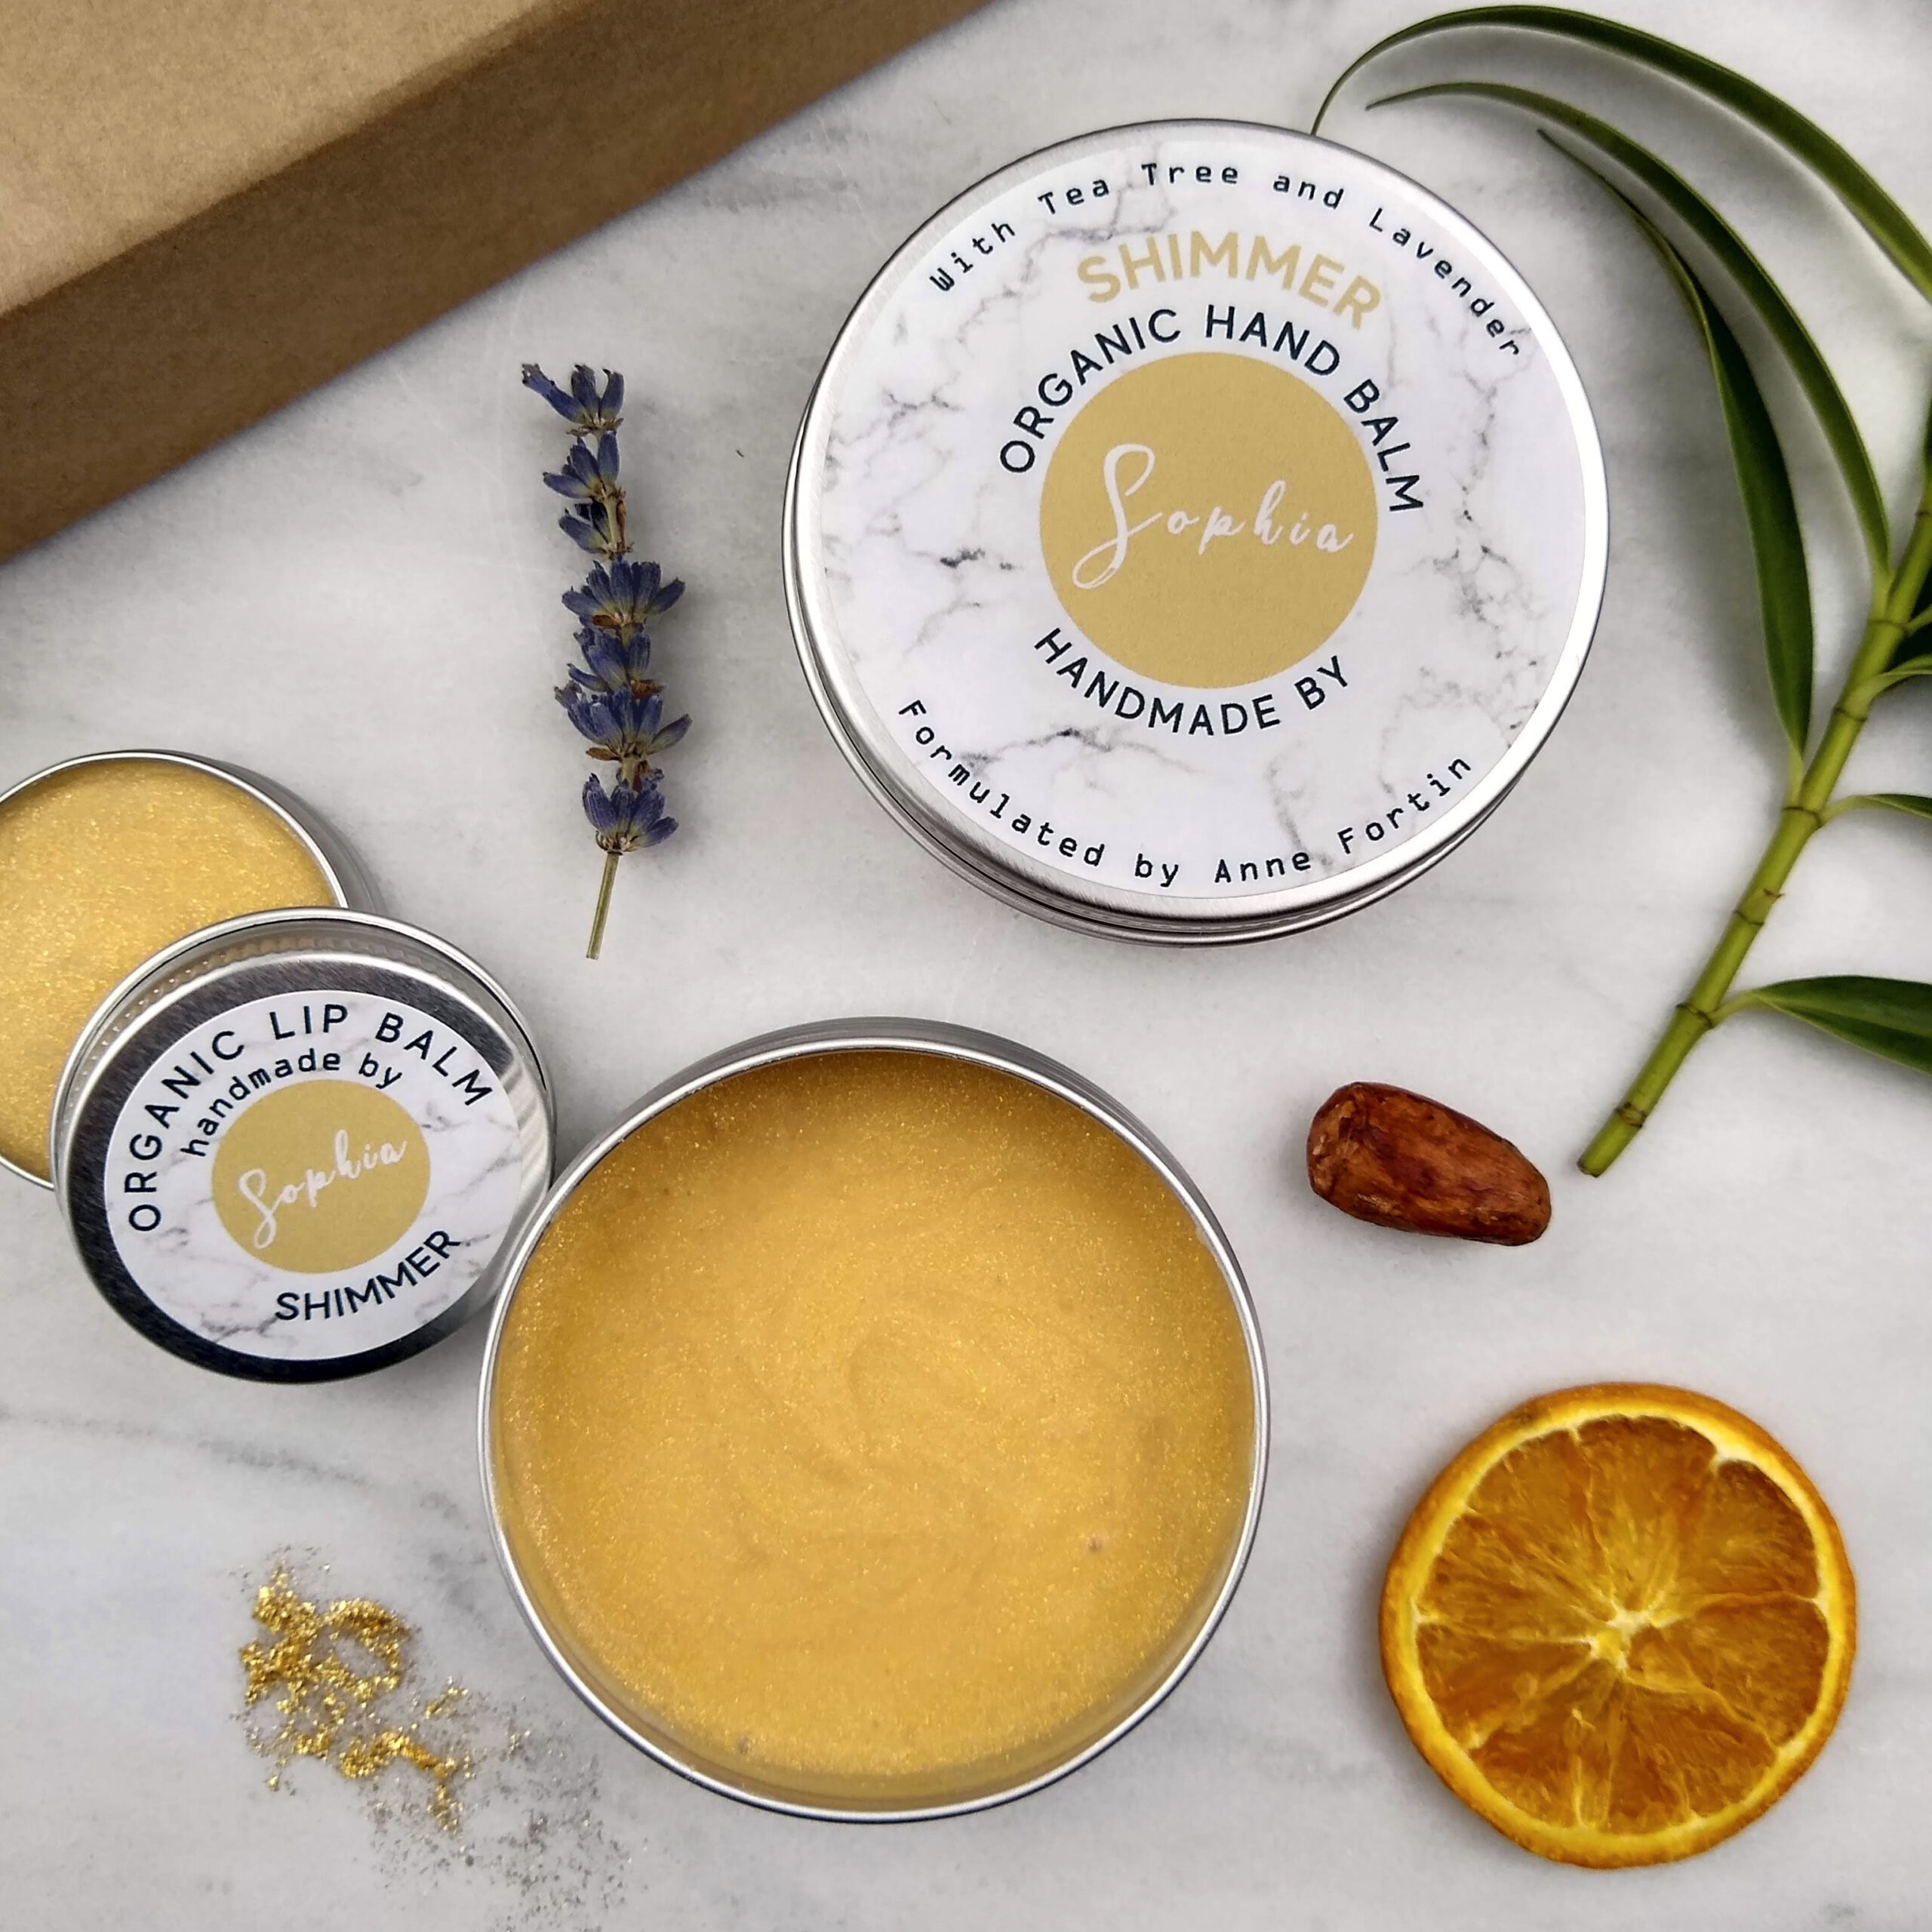 Personalised Finished Balm with Tea Tree and Lavender